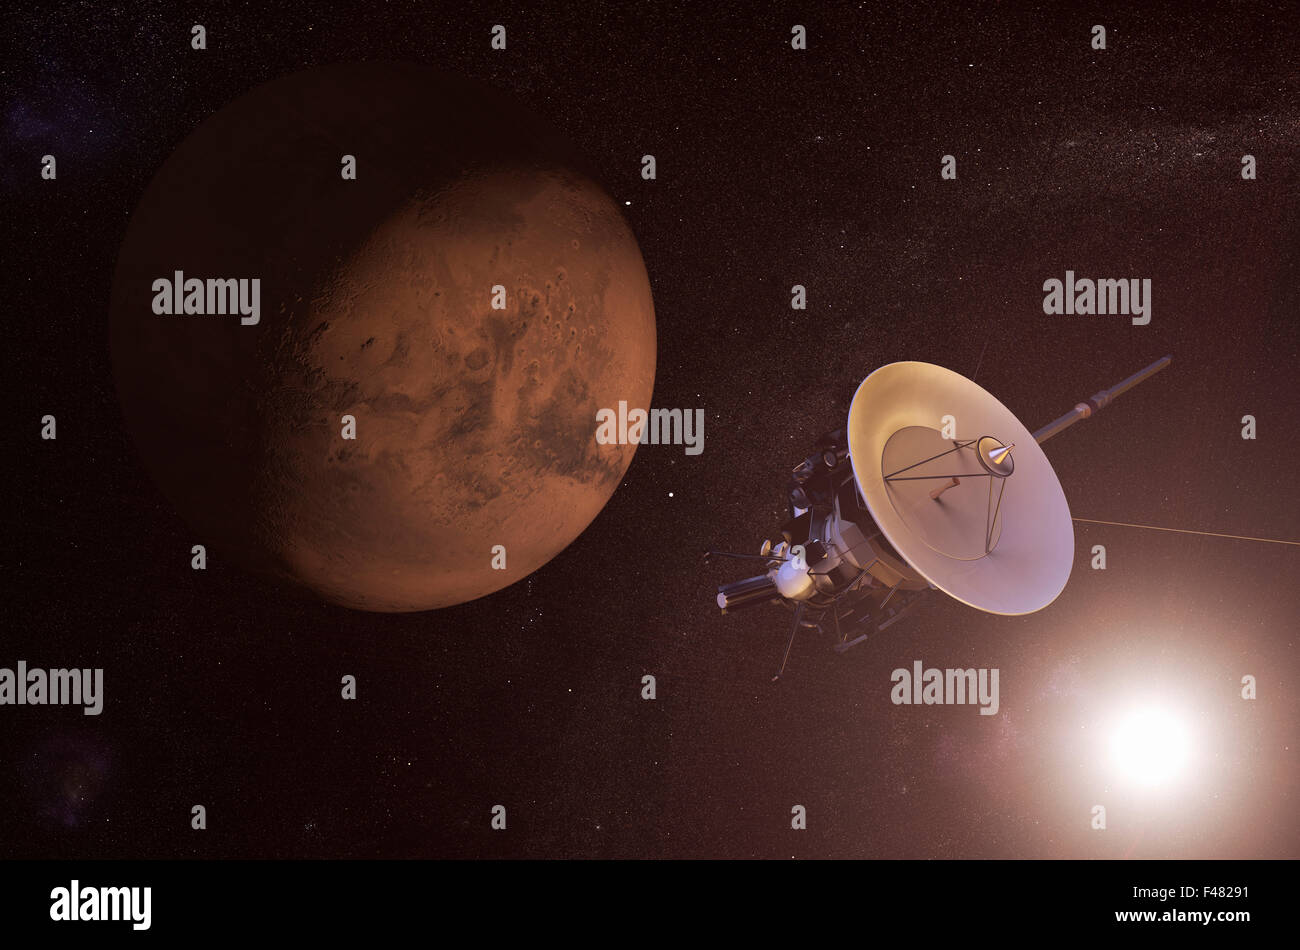 Digital illustration of an unmanned spacecraft approaching Mars - Stock Image